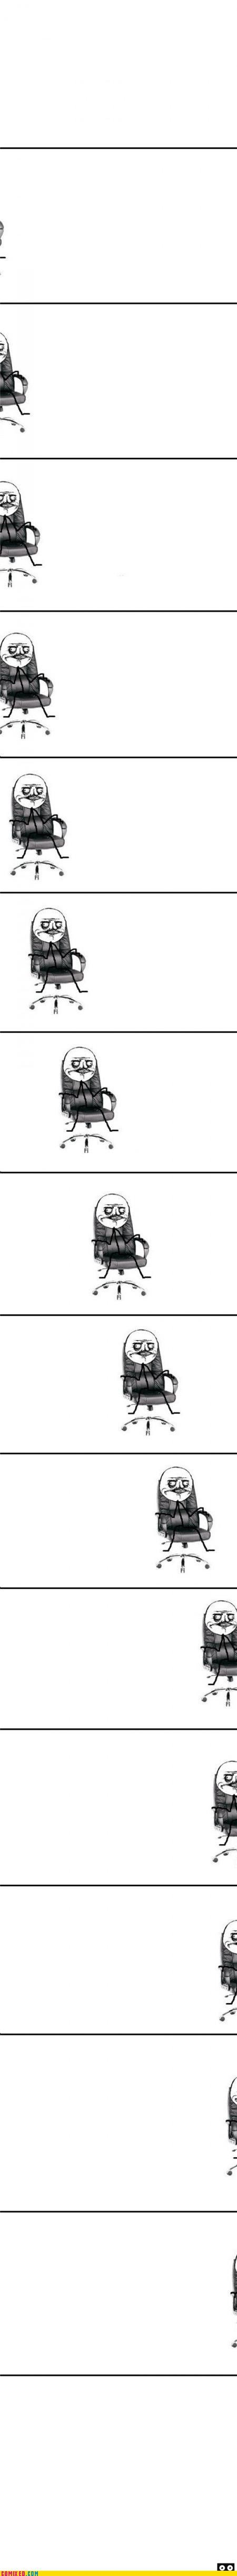 me gusta,office chair,Rage Comics,rolly chair